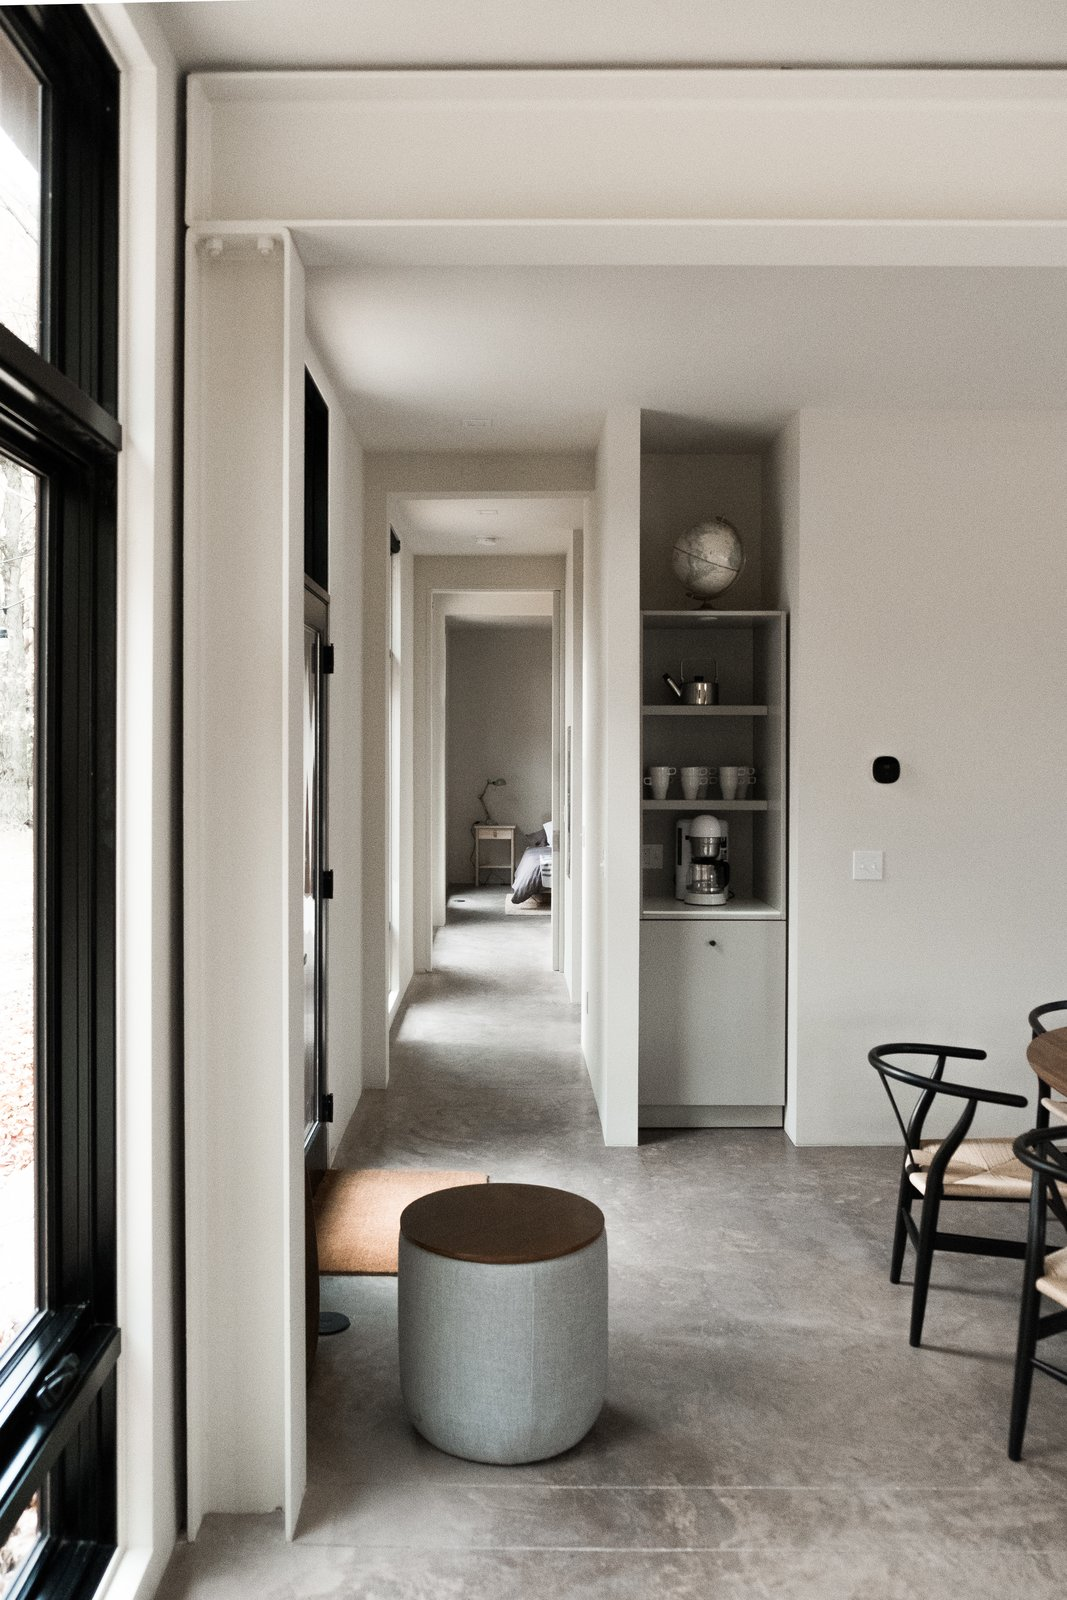 Hallway and Concrete Floor Hallway view from great room to bedroom.  North Shore #7 by Hygge Supply